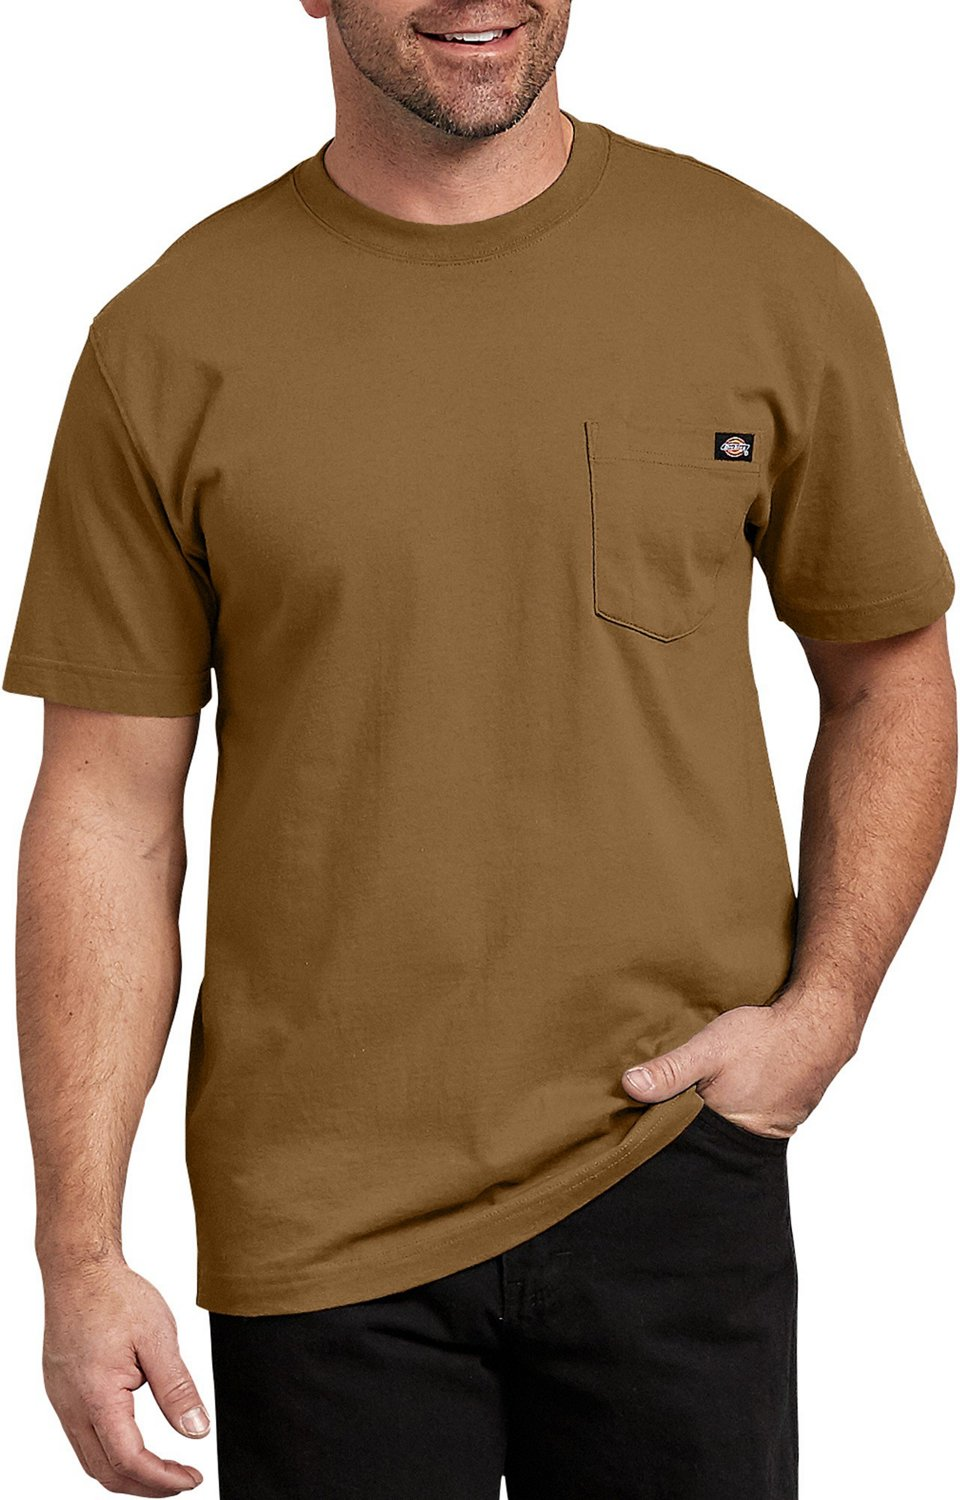 4137c9fce1b Display product reviews for Dickies Men s Short Sleeve Heavyweight Crew  Neck T-shirt